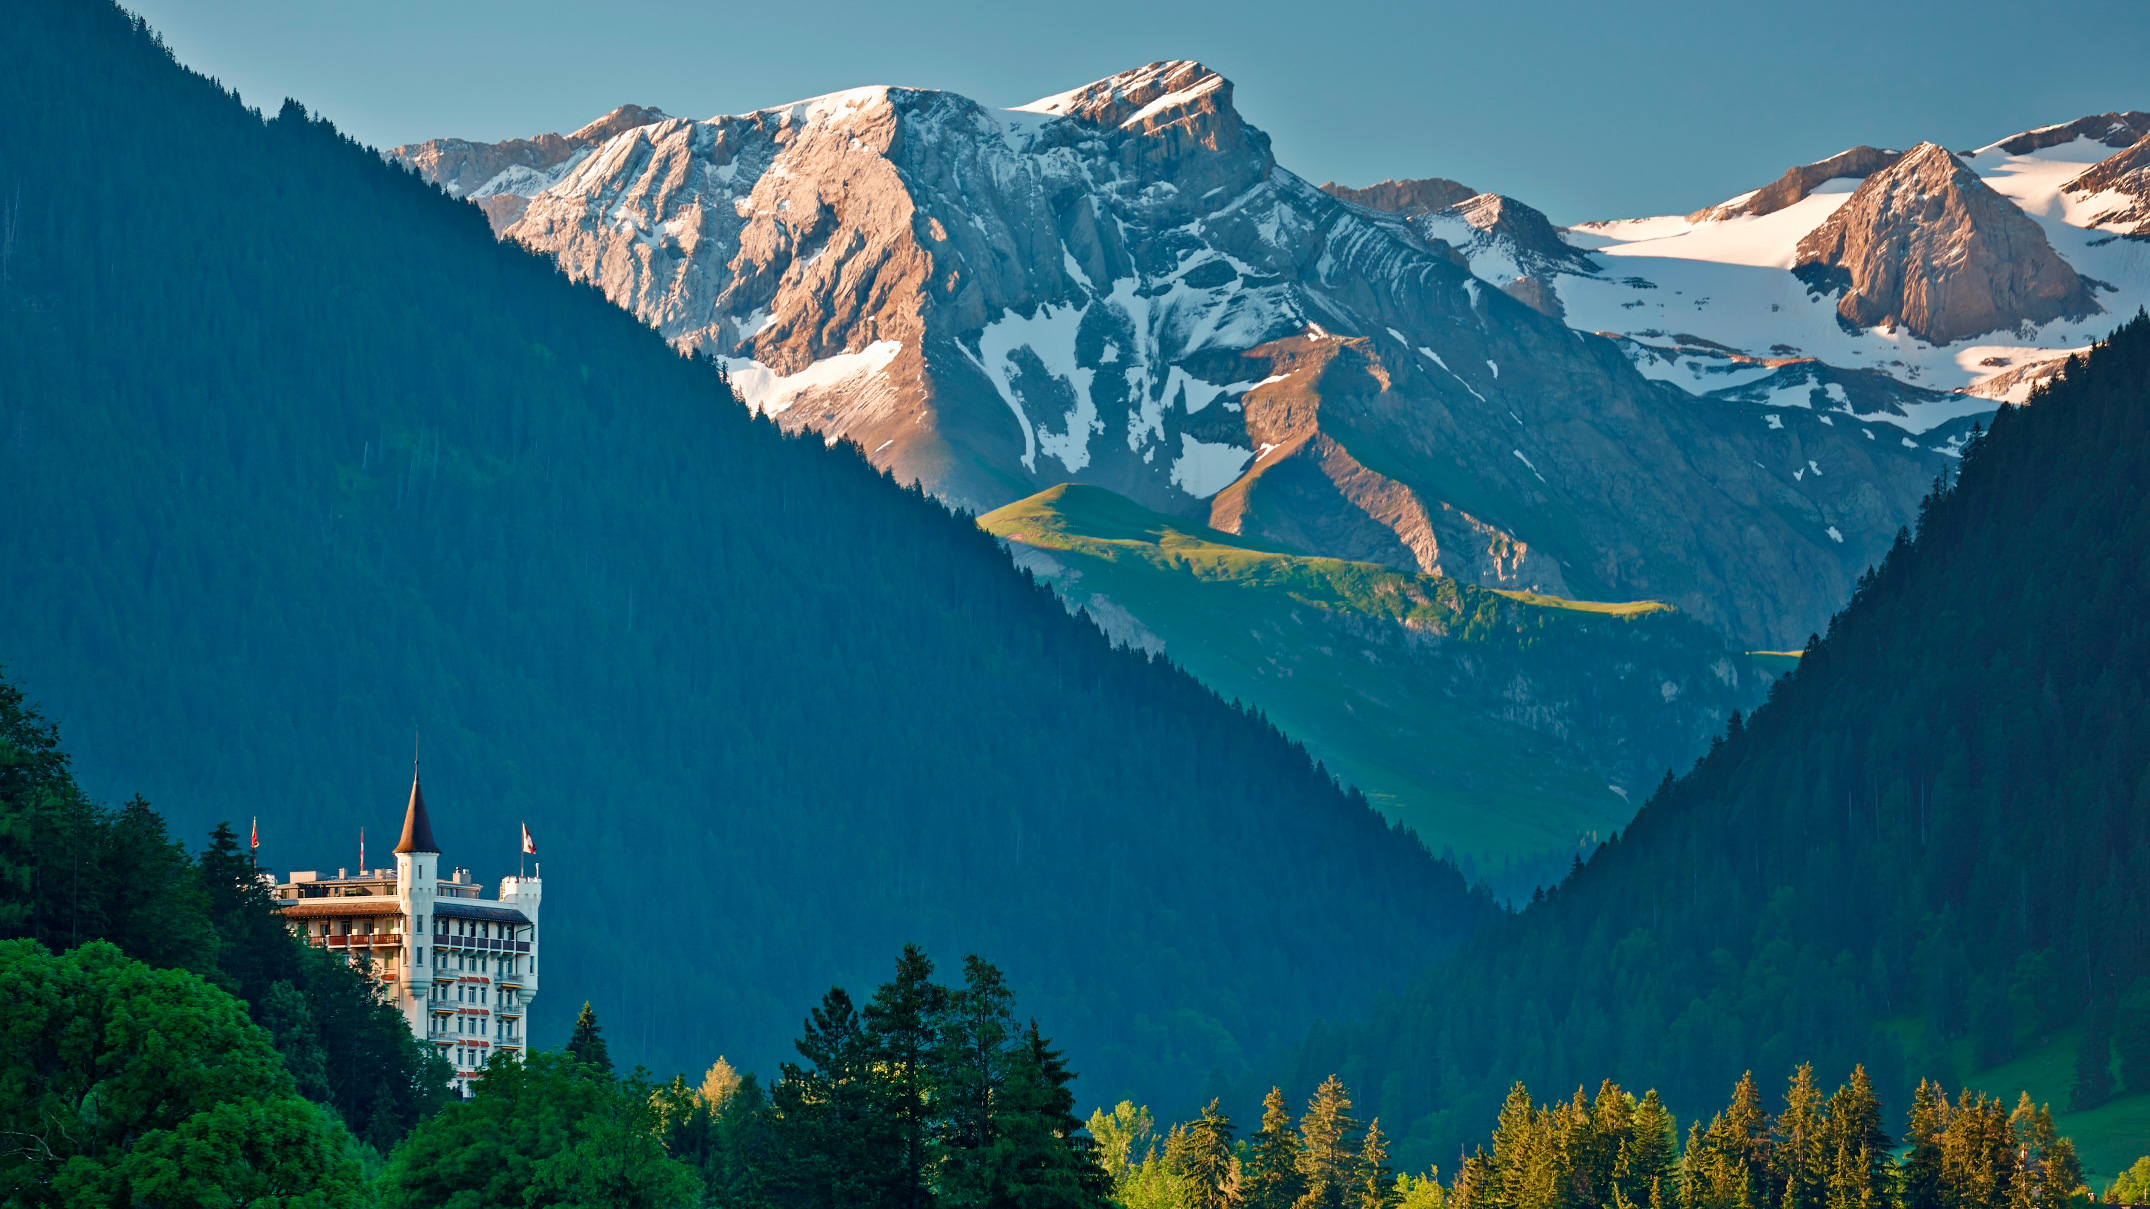 Check out: Gstaad, an underrated ski destination only the seriously wealthy know about